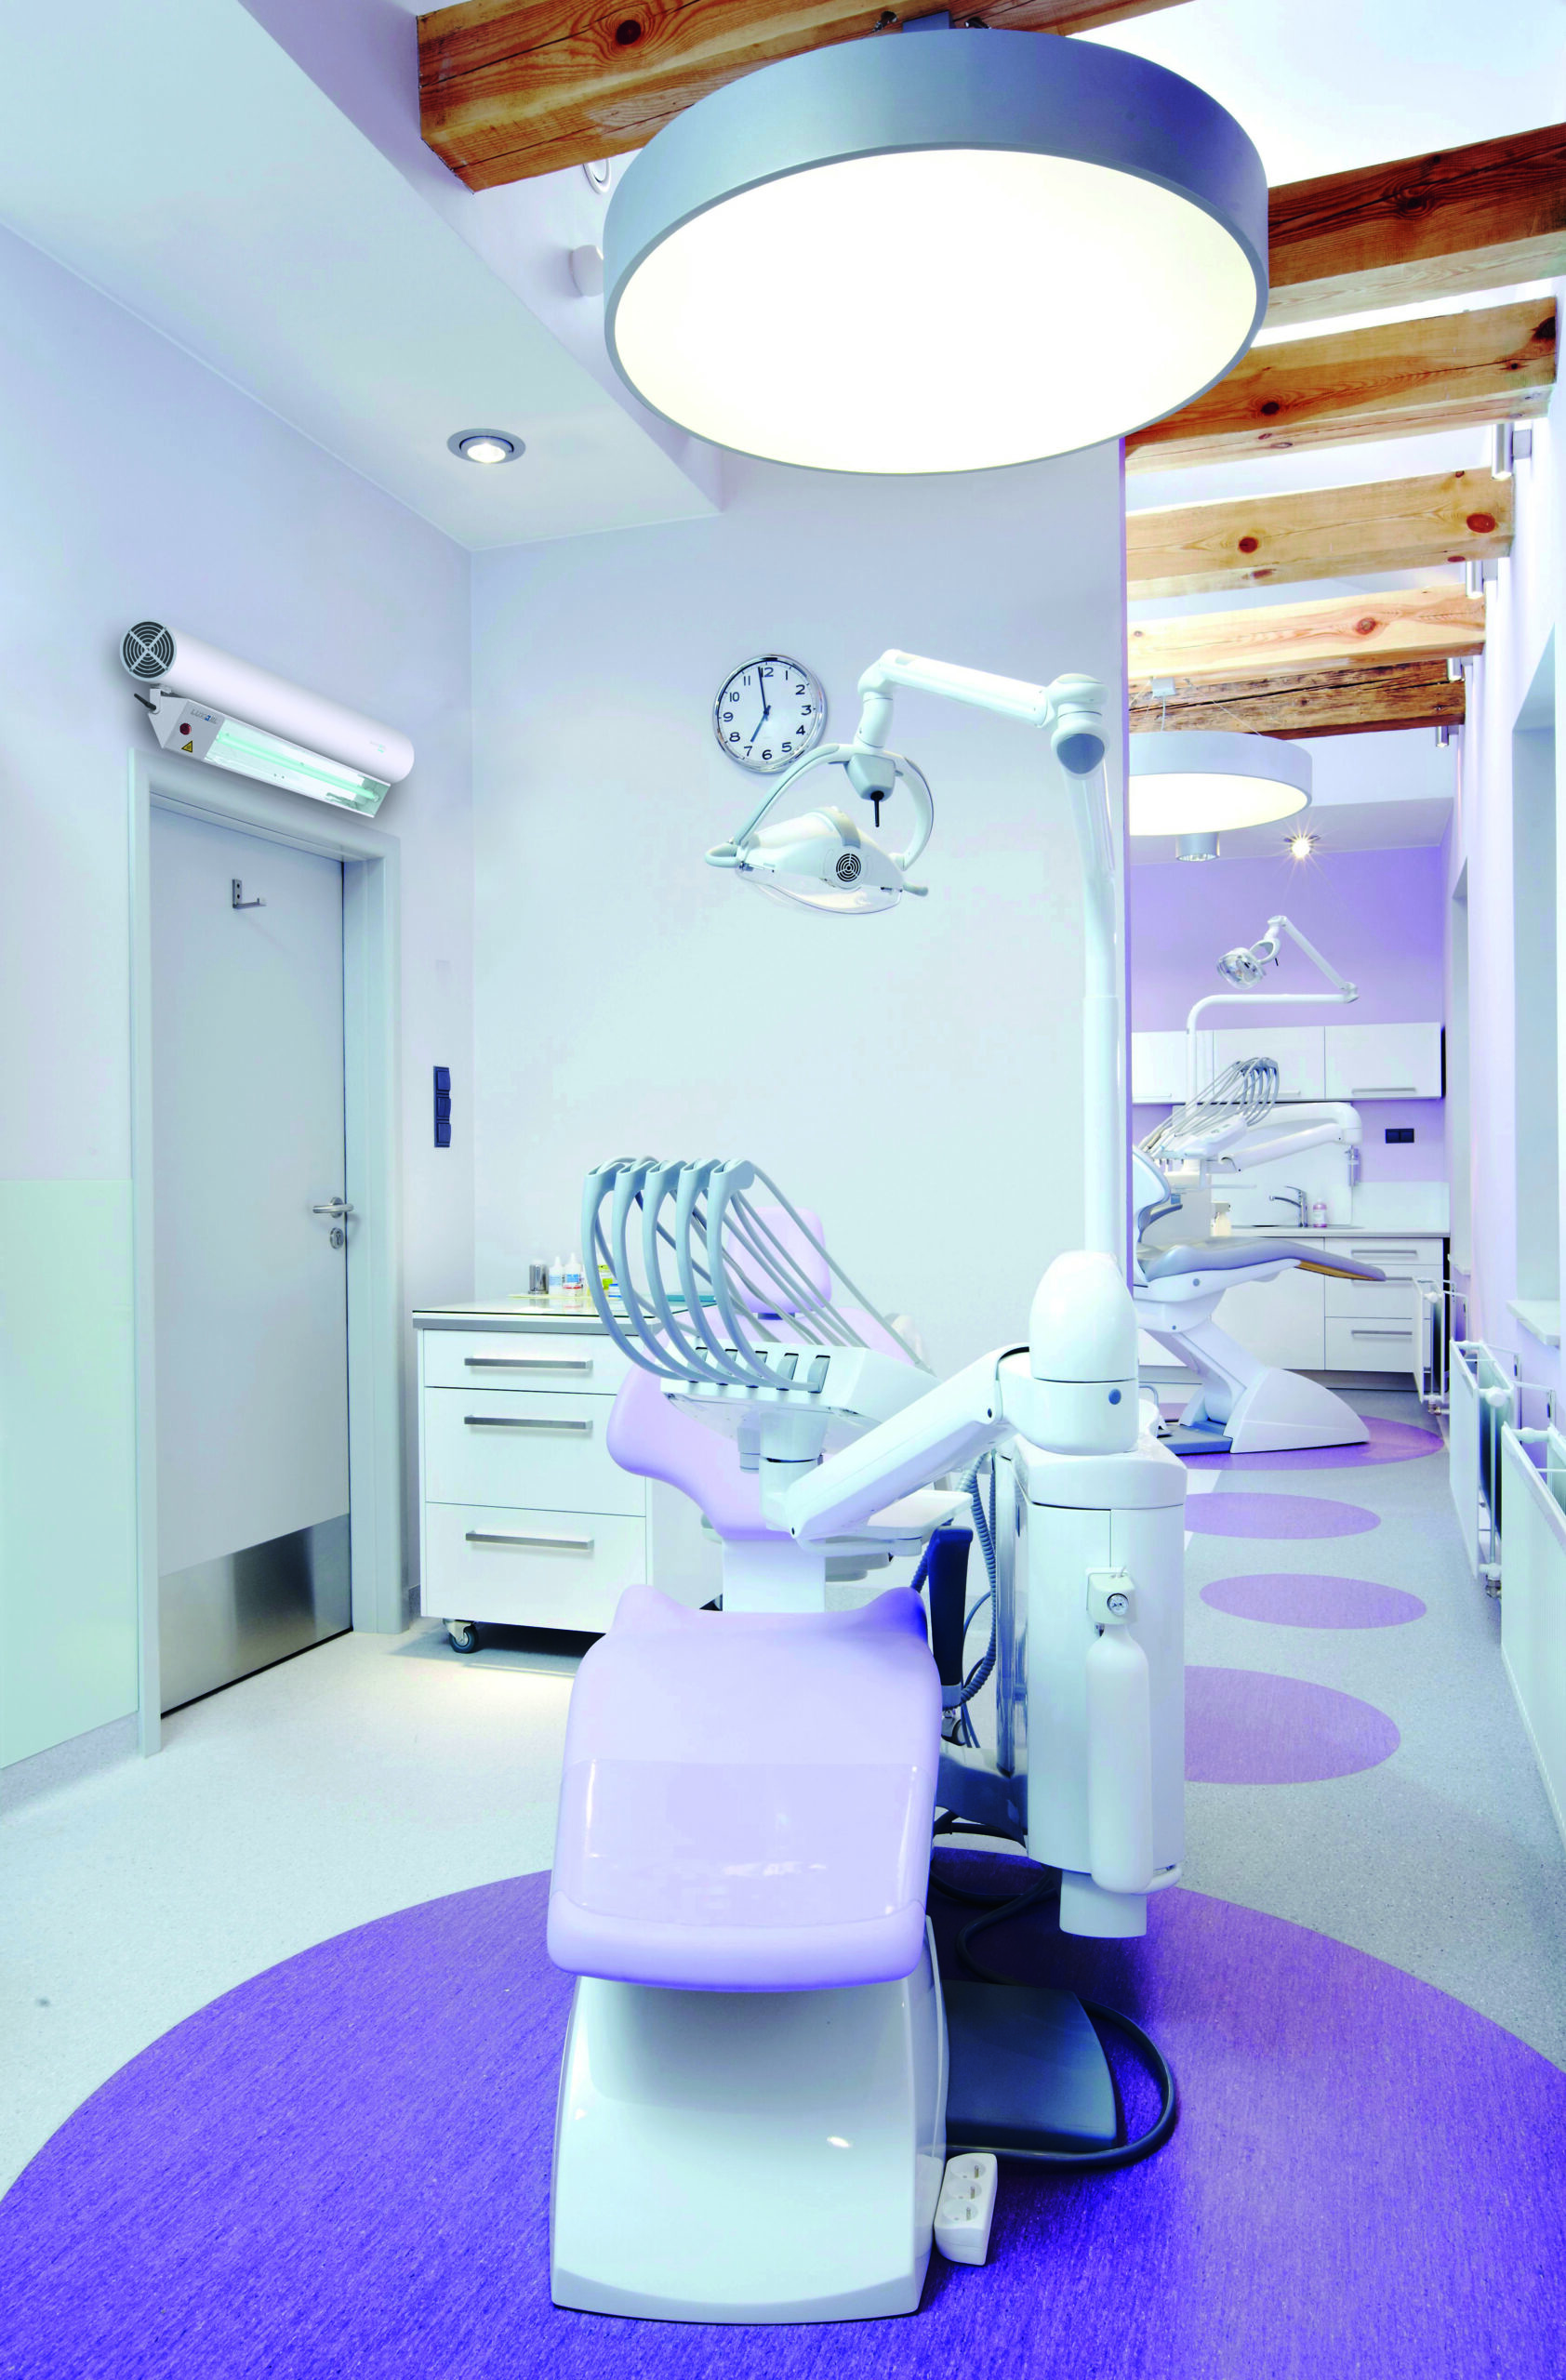 BGD Groupe_Luxibel B Hybrid placed in dental clinic for UVC air and surface disinfection.